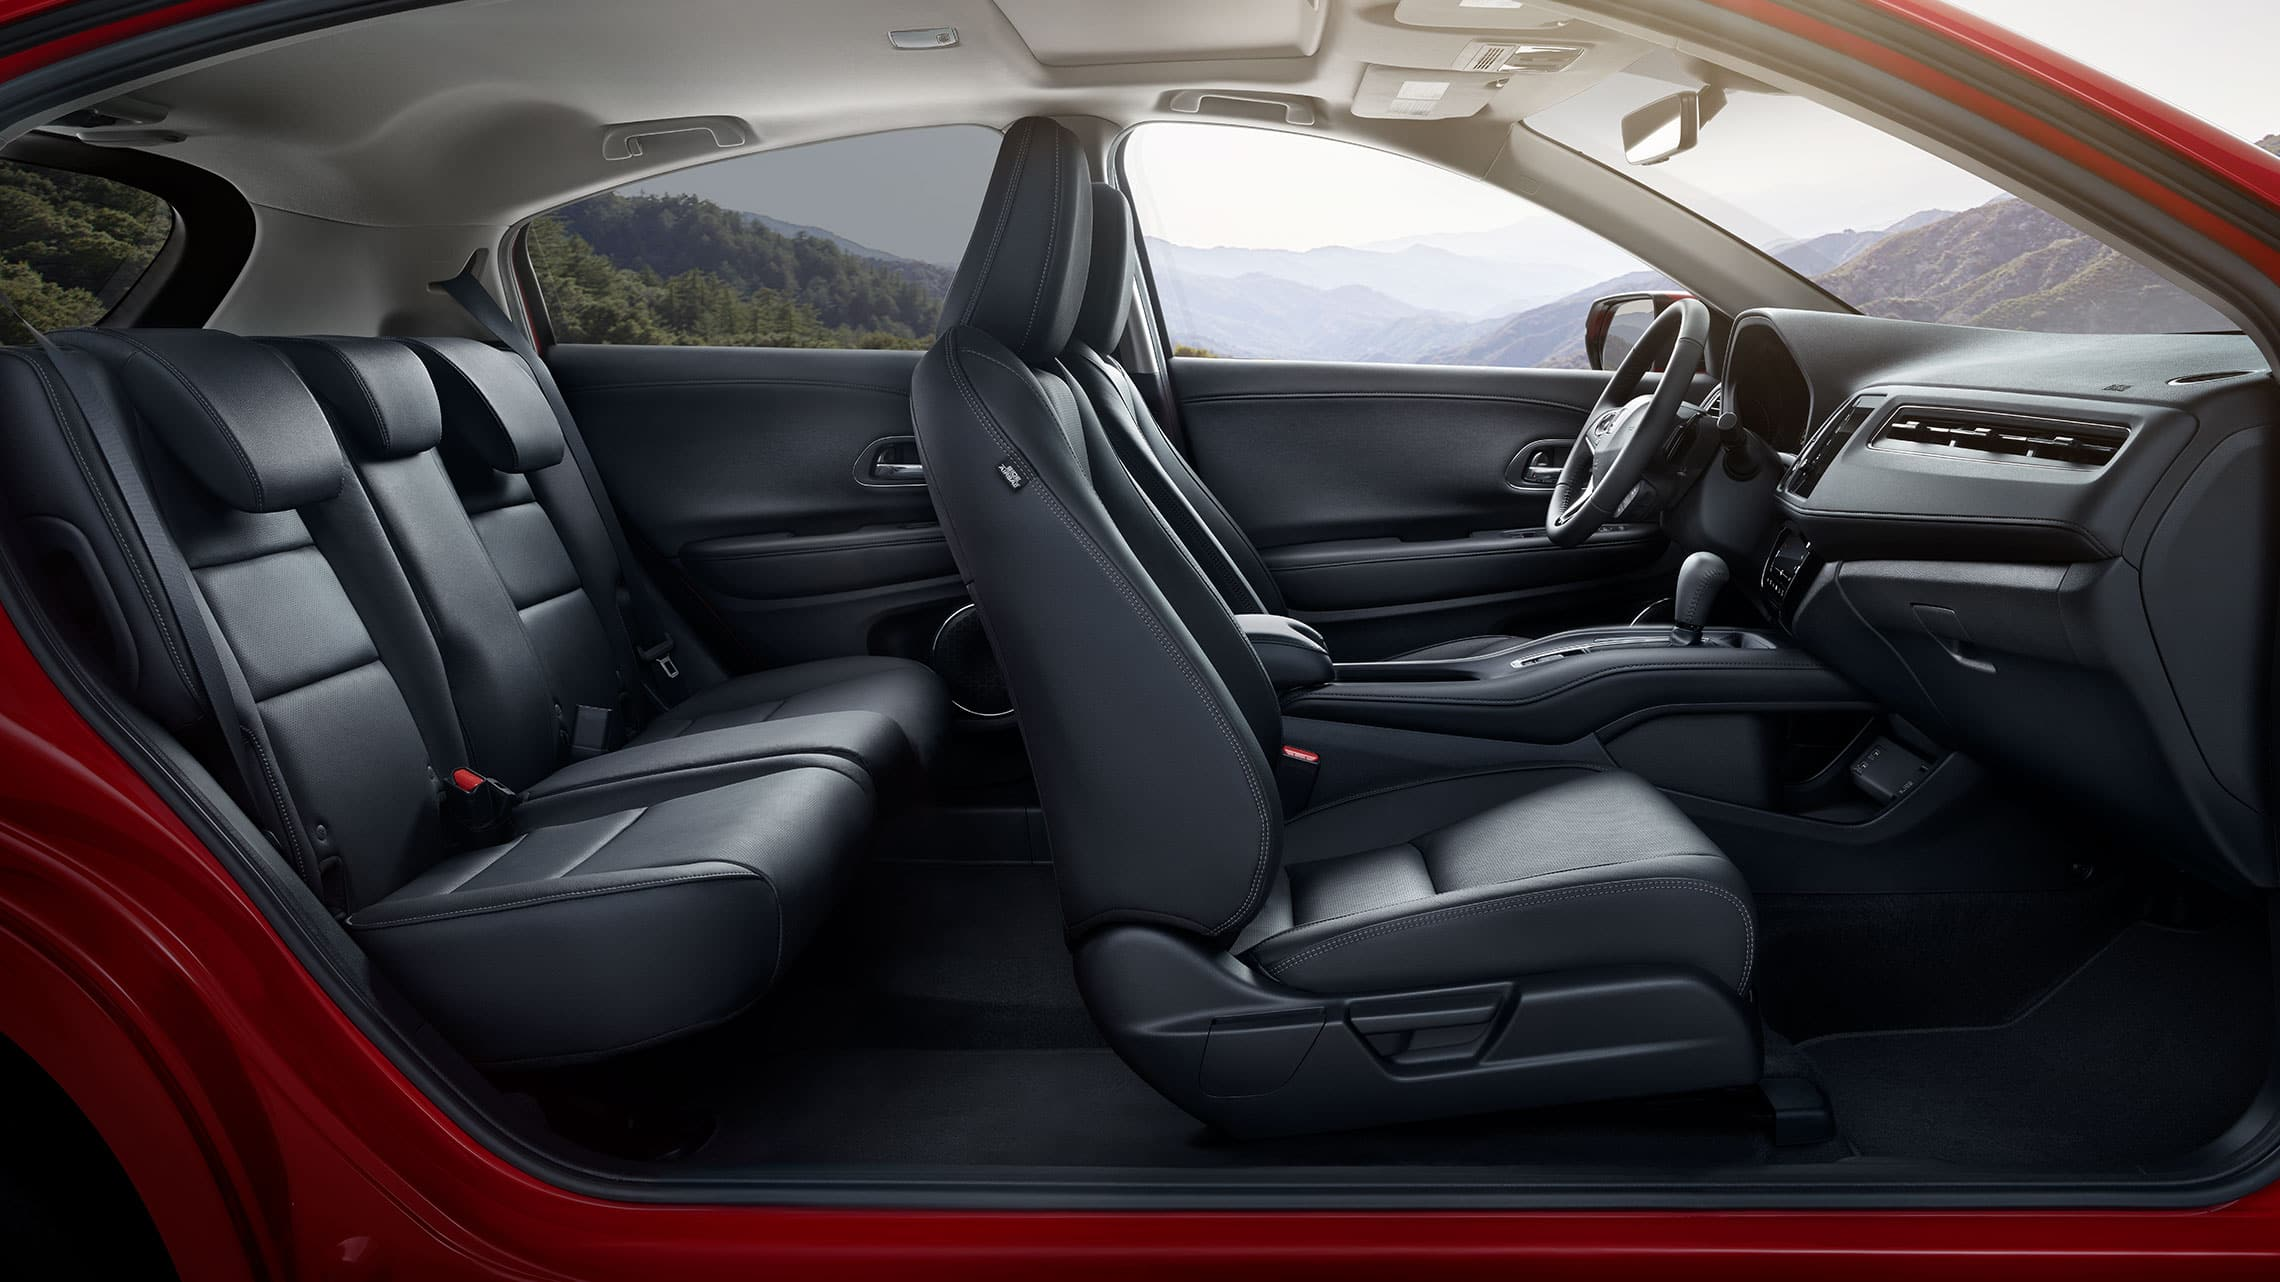 Interior view of the 2020 Honda HR-V Touring front seats in Black Leather.